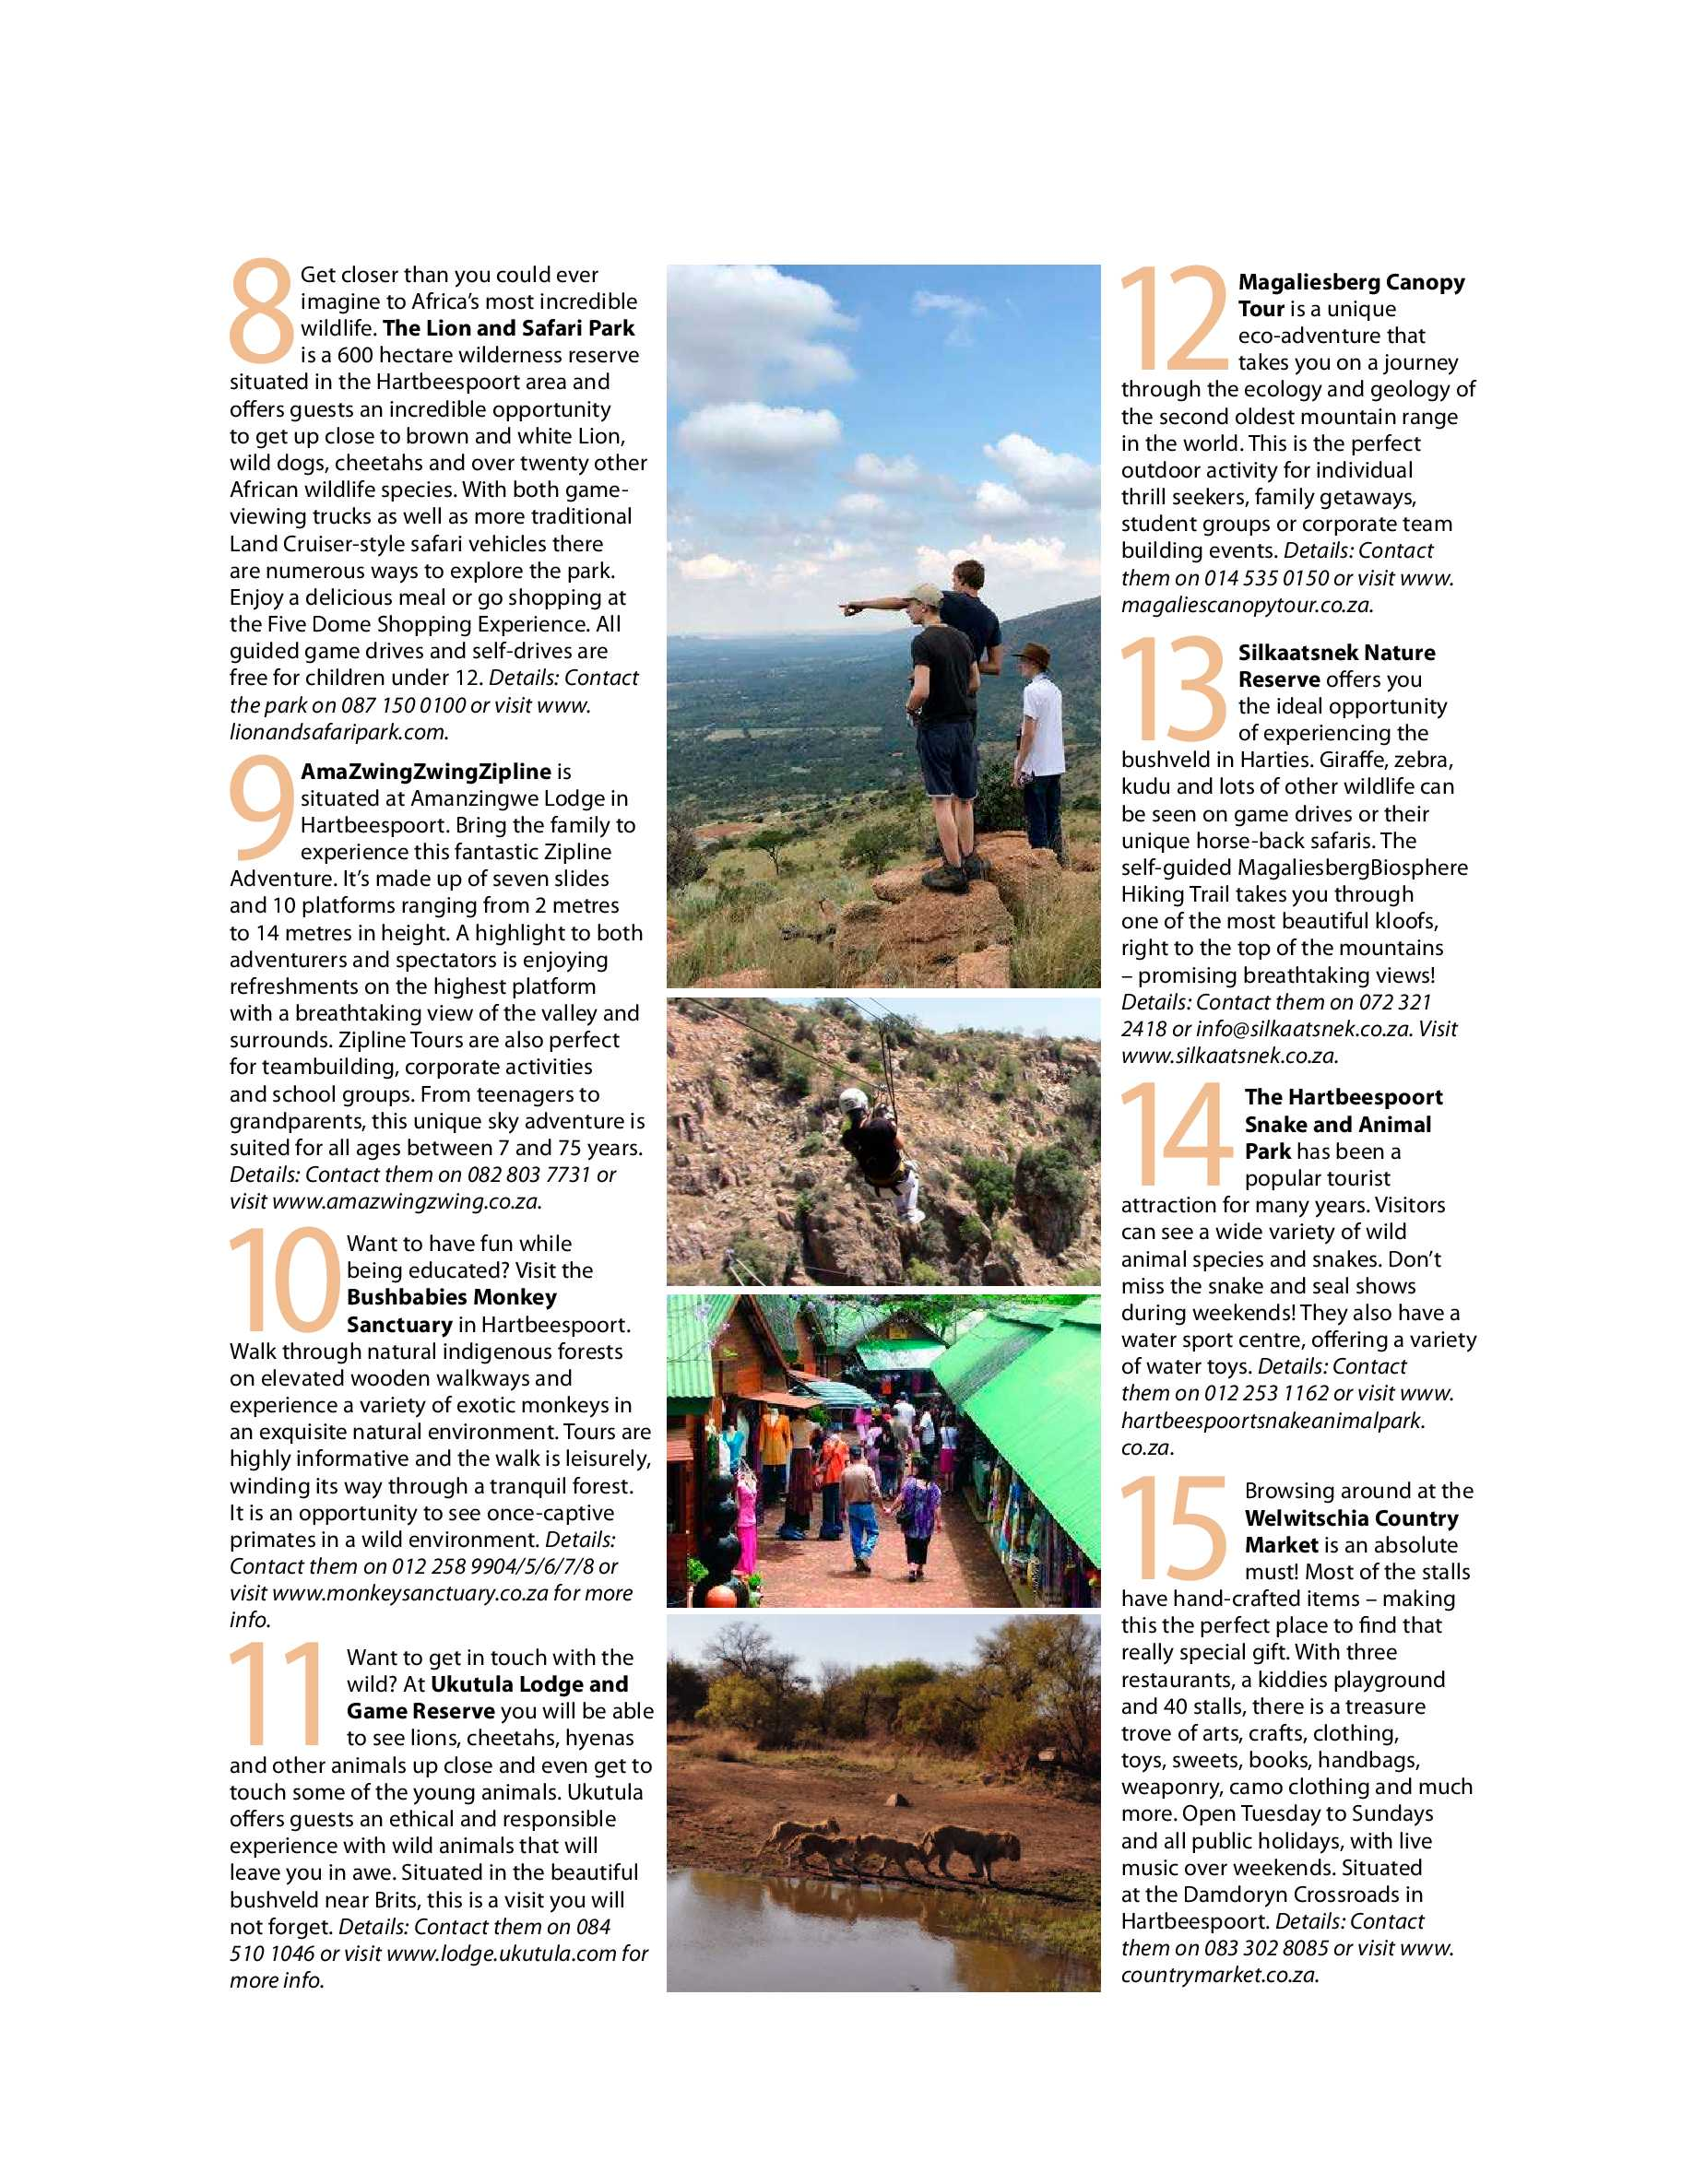 get-joburg-west-march-2018-epapers-page-27